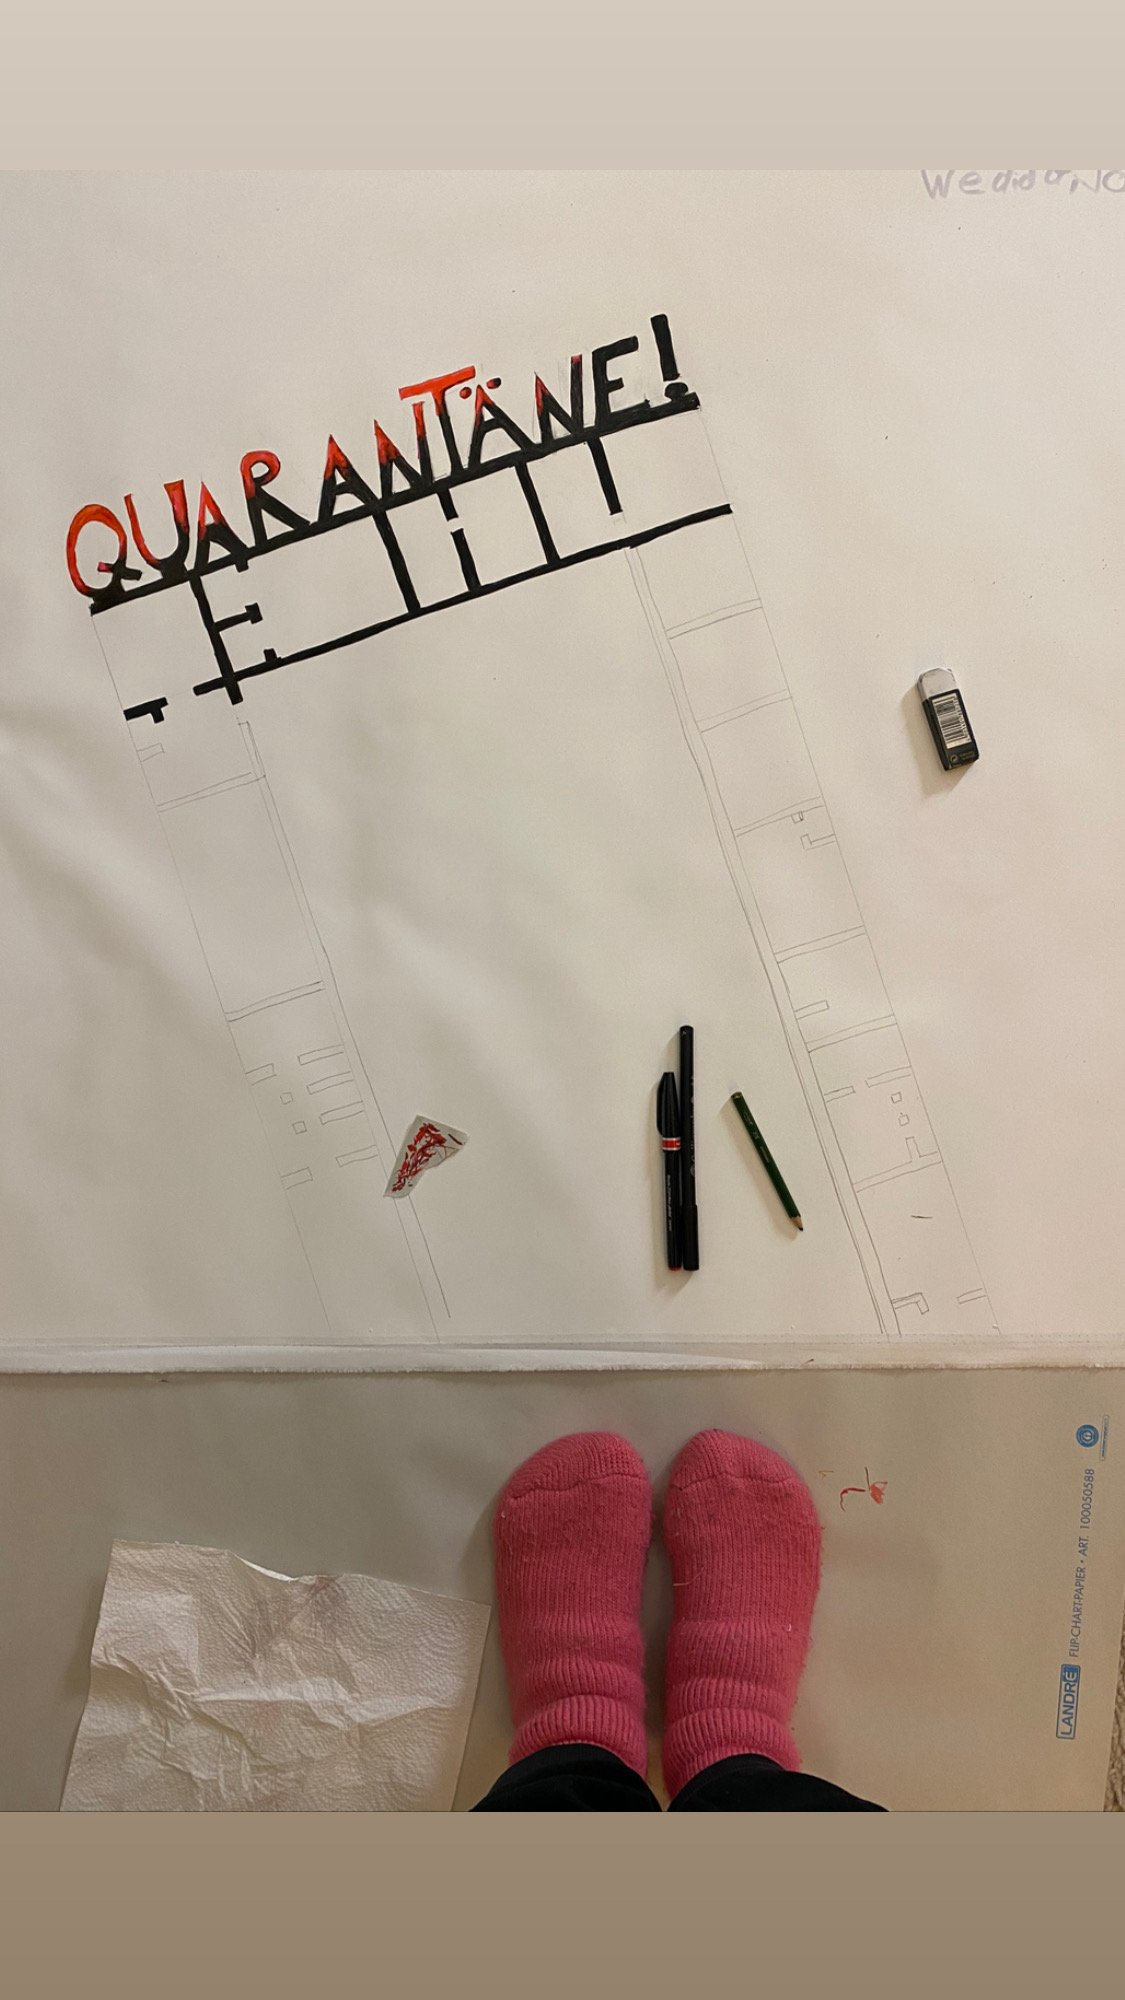 unfinished drawing from Simone about quarantine